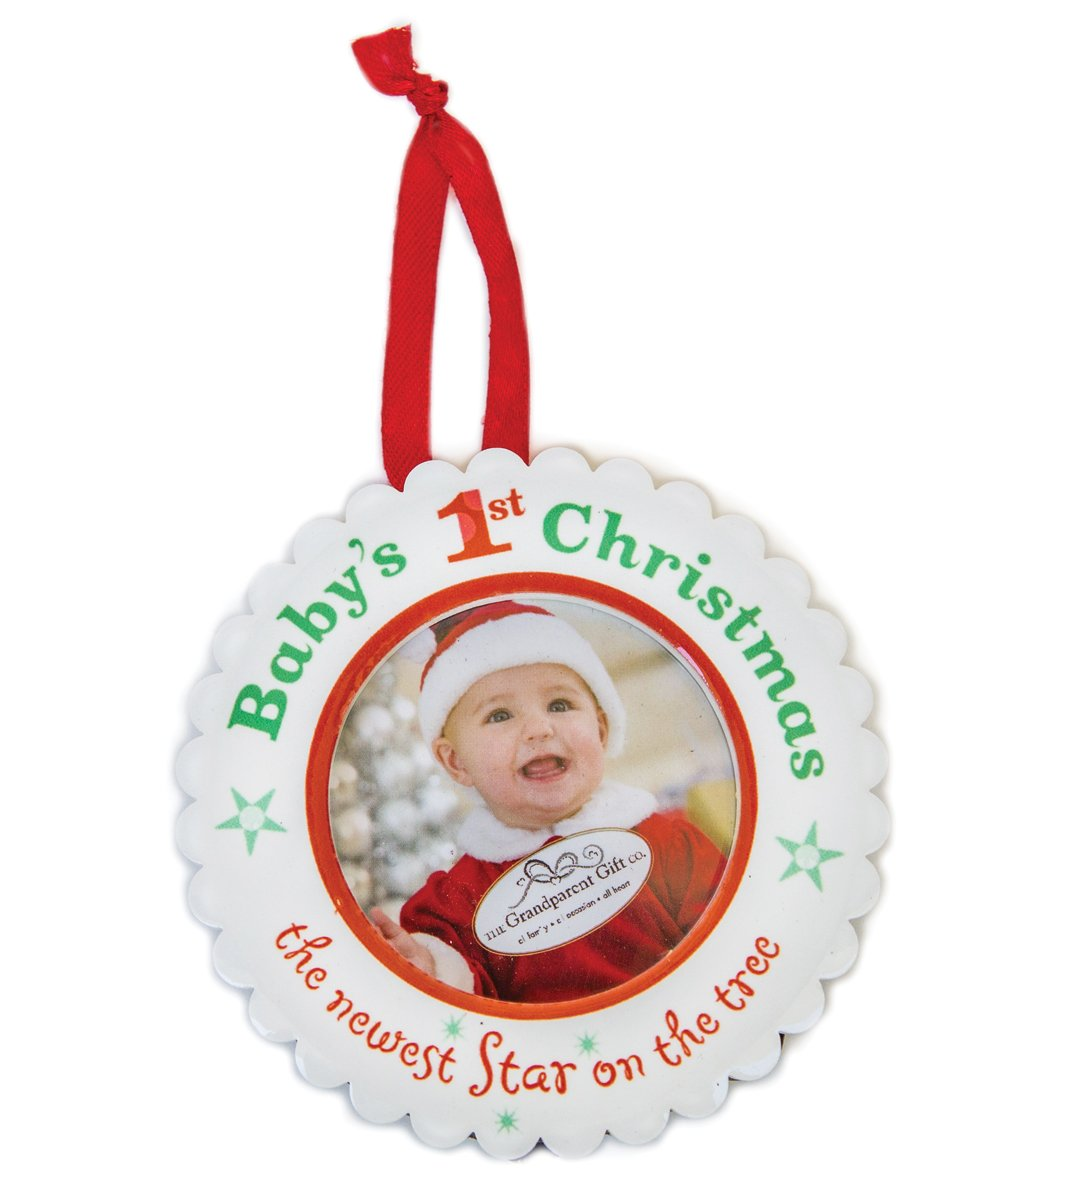 First Christmas As Grandparents Ornament